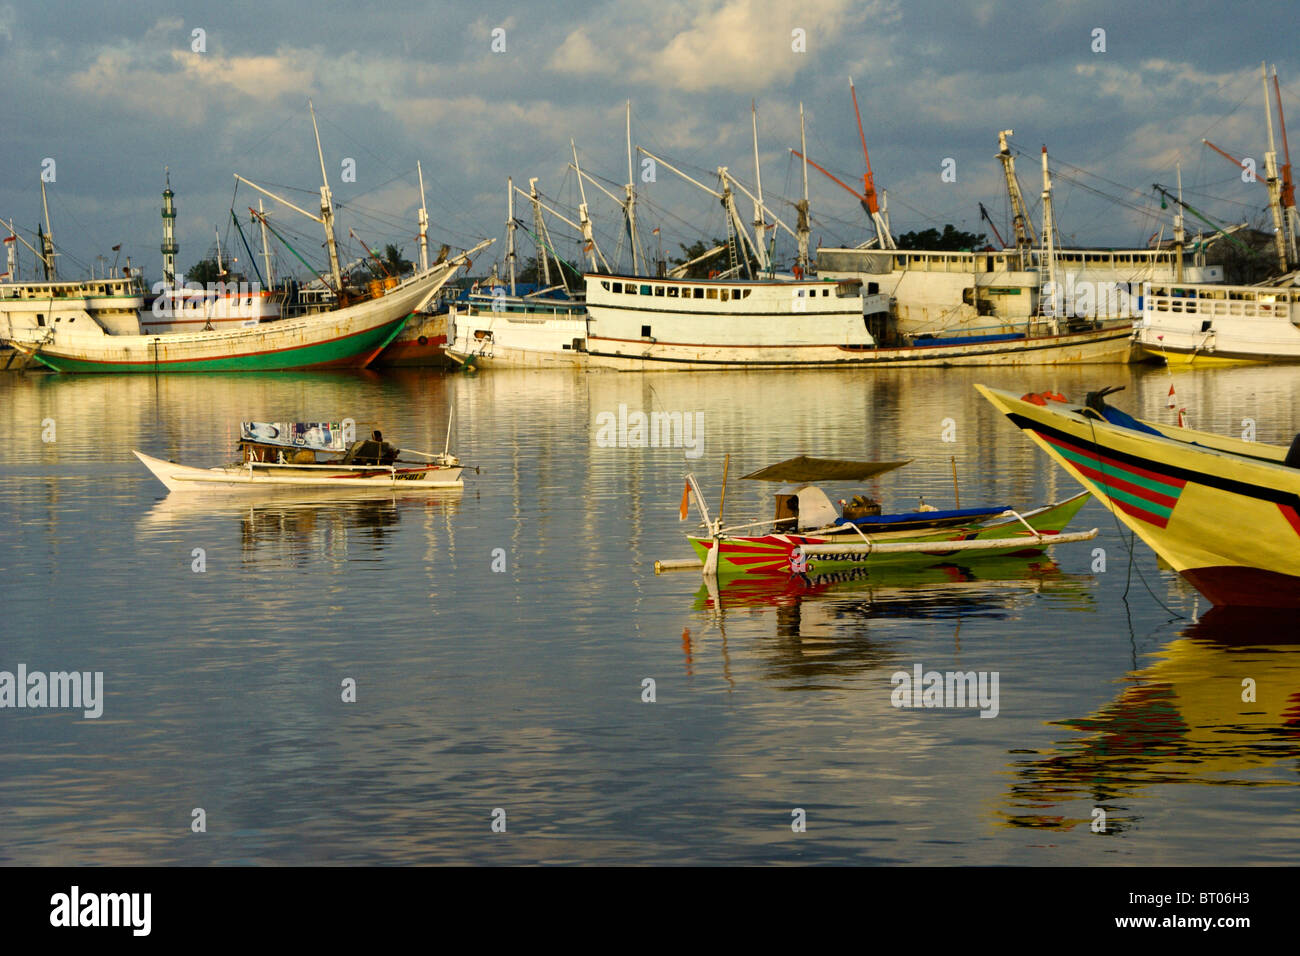 Paotere Harbor, Makassar, South Sulawesi, Indonesia - Stock Image